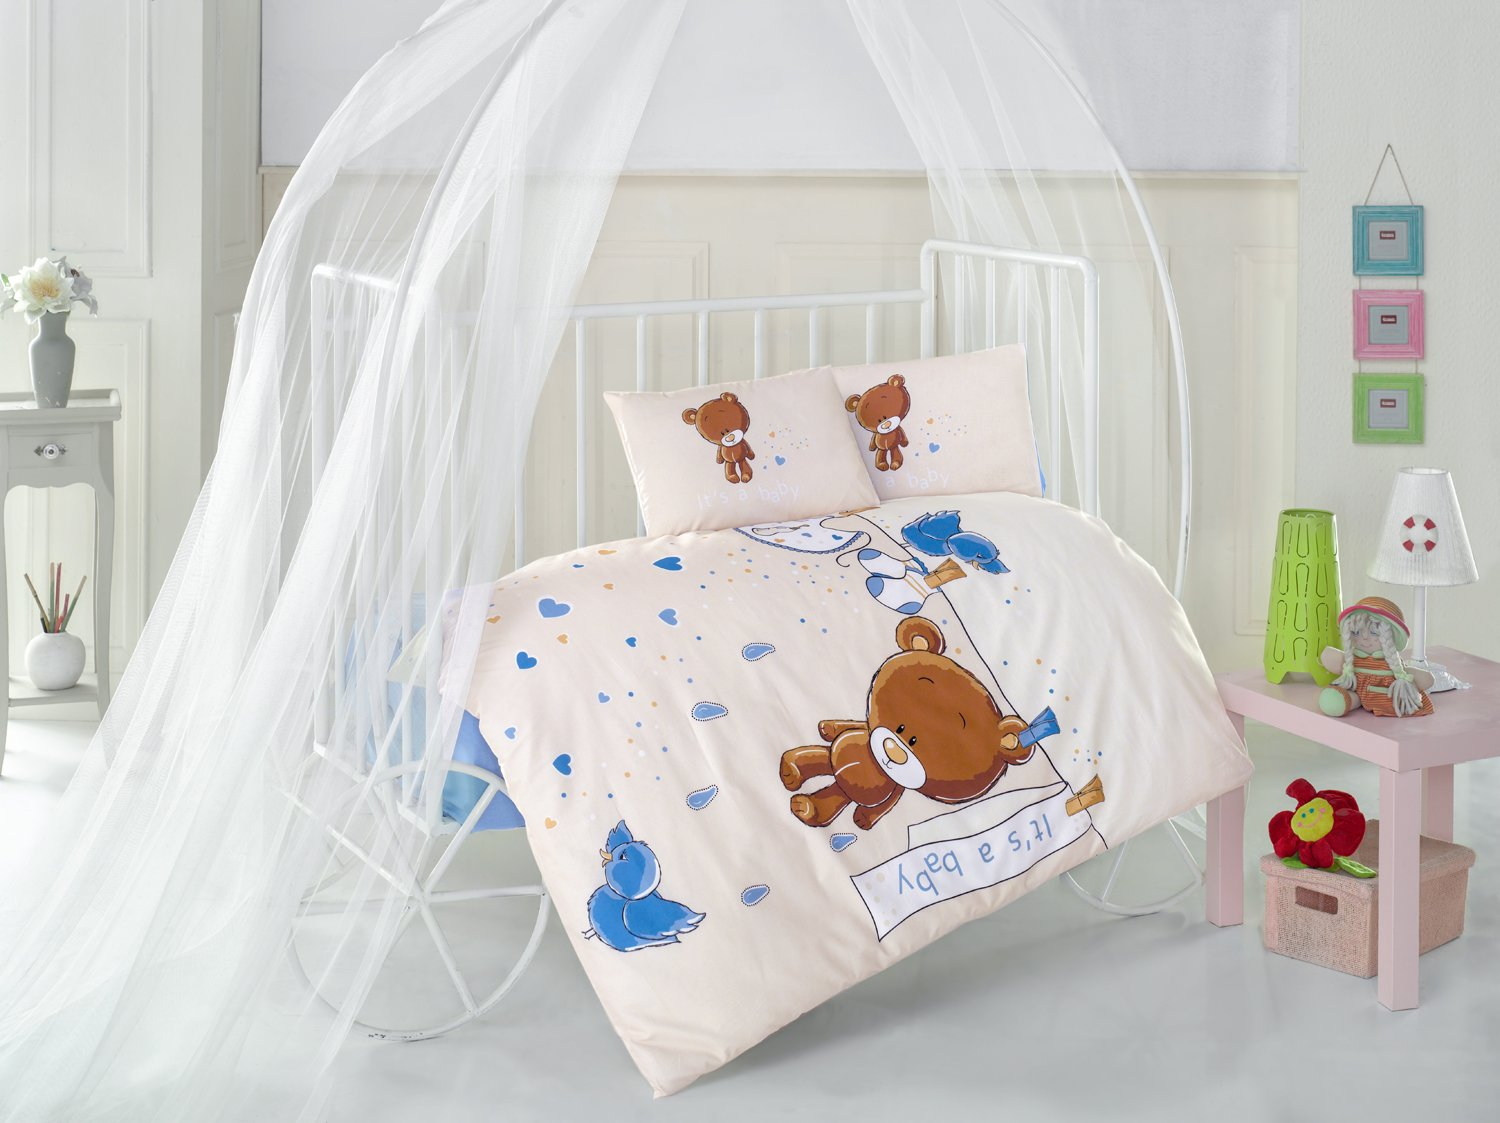 Teddy Bear V2 Blue Baby Cot Bed Duvet Cover Set, 100% Cotton Soft and Healthy 4-Pieces Bedding Set